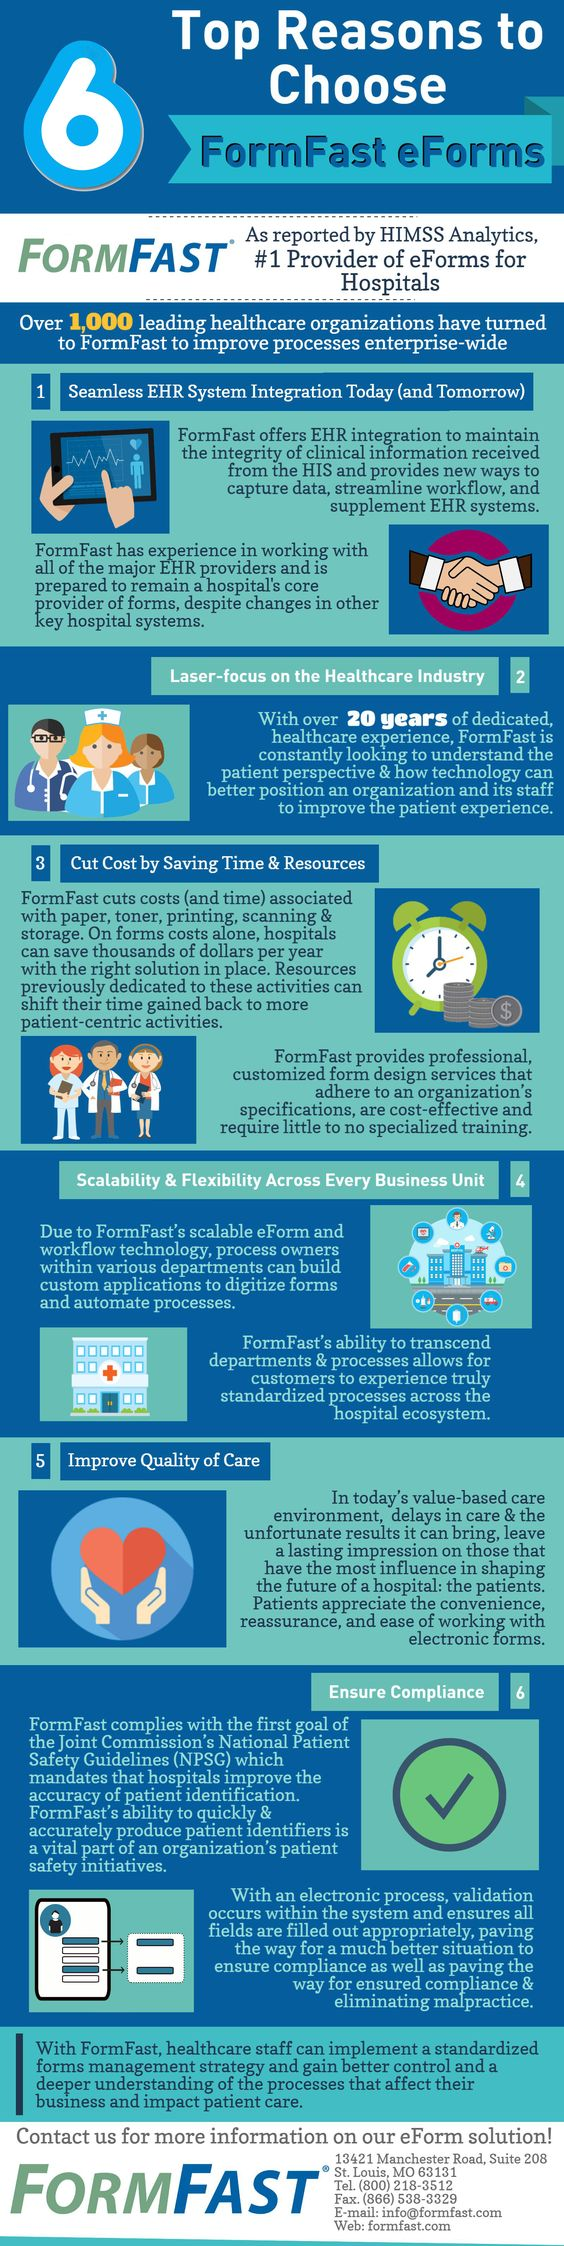 While there are endless reasons the healthcare industry recommends FormFast, the infographic lists the top six reasons organizations should select FormFast as their dedicated healthcare eForms provider. #esig #eForms #electronicsignature #esignature #HealthIT #HealthcareForms #InformedConsent #HIMMSS #FormFast